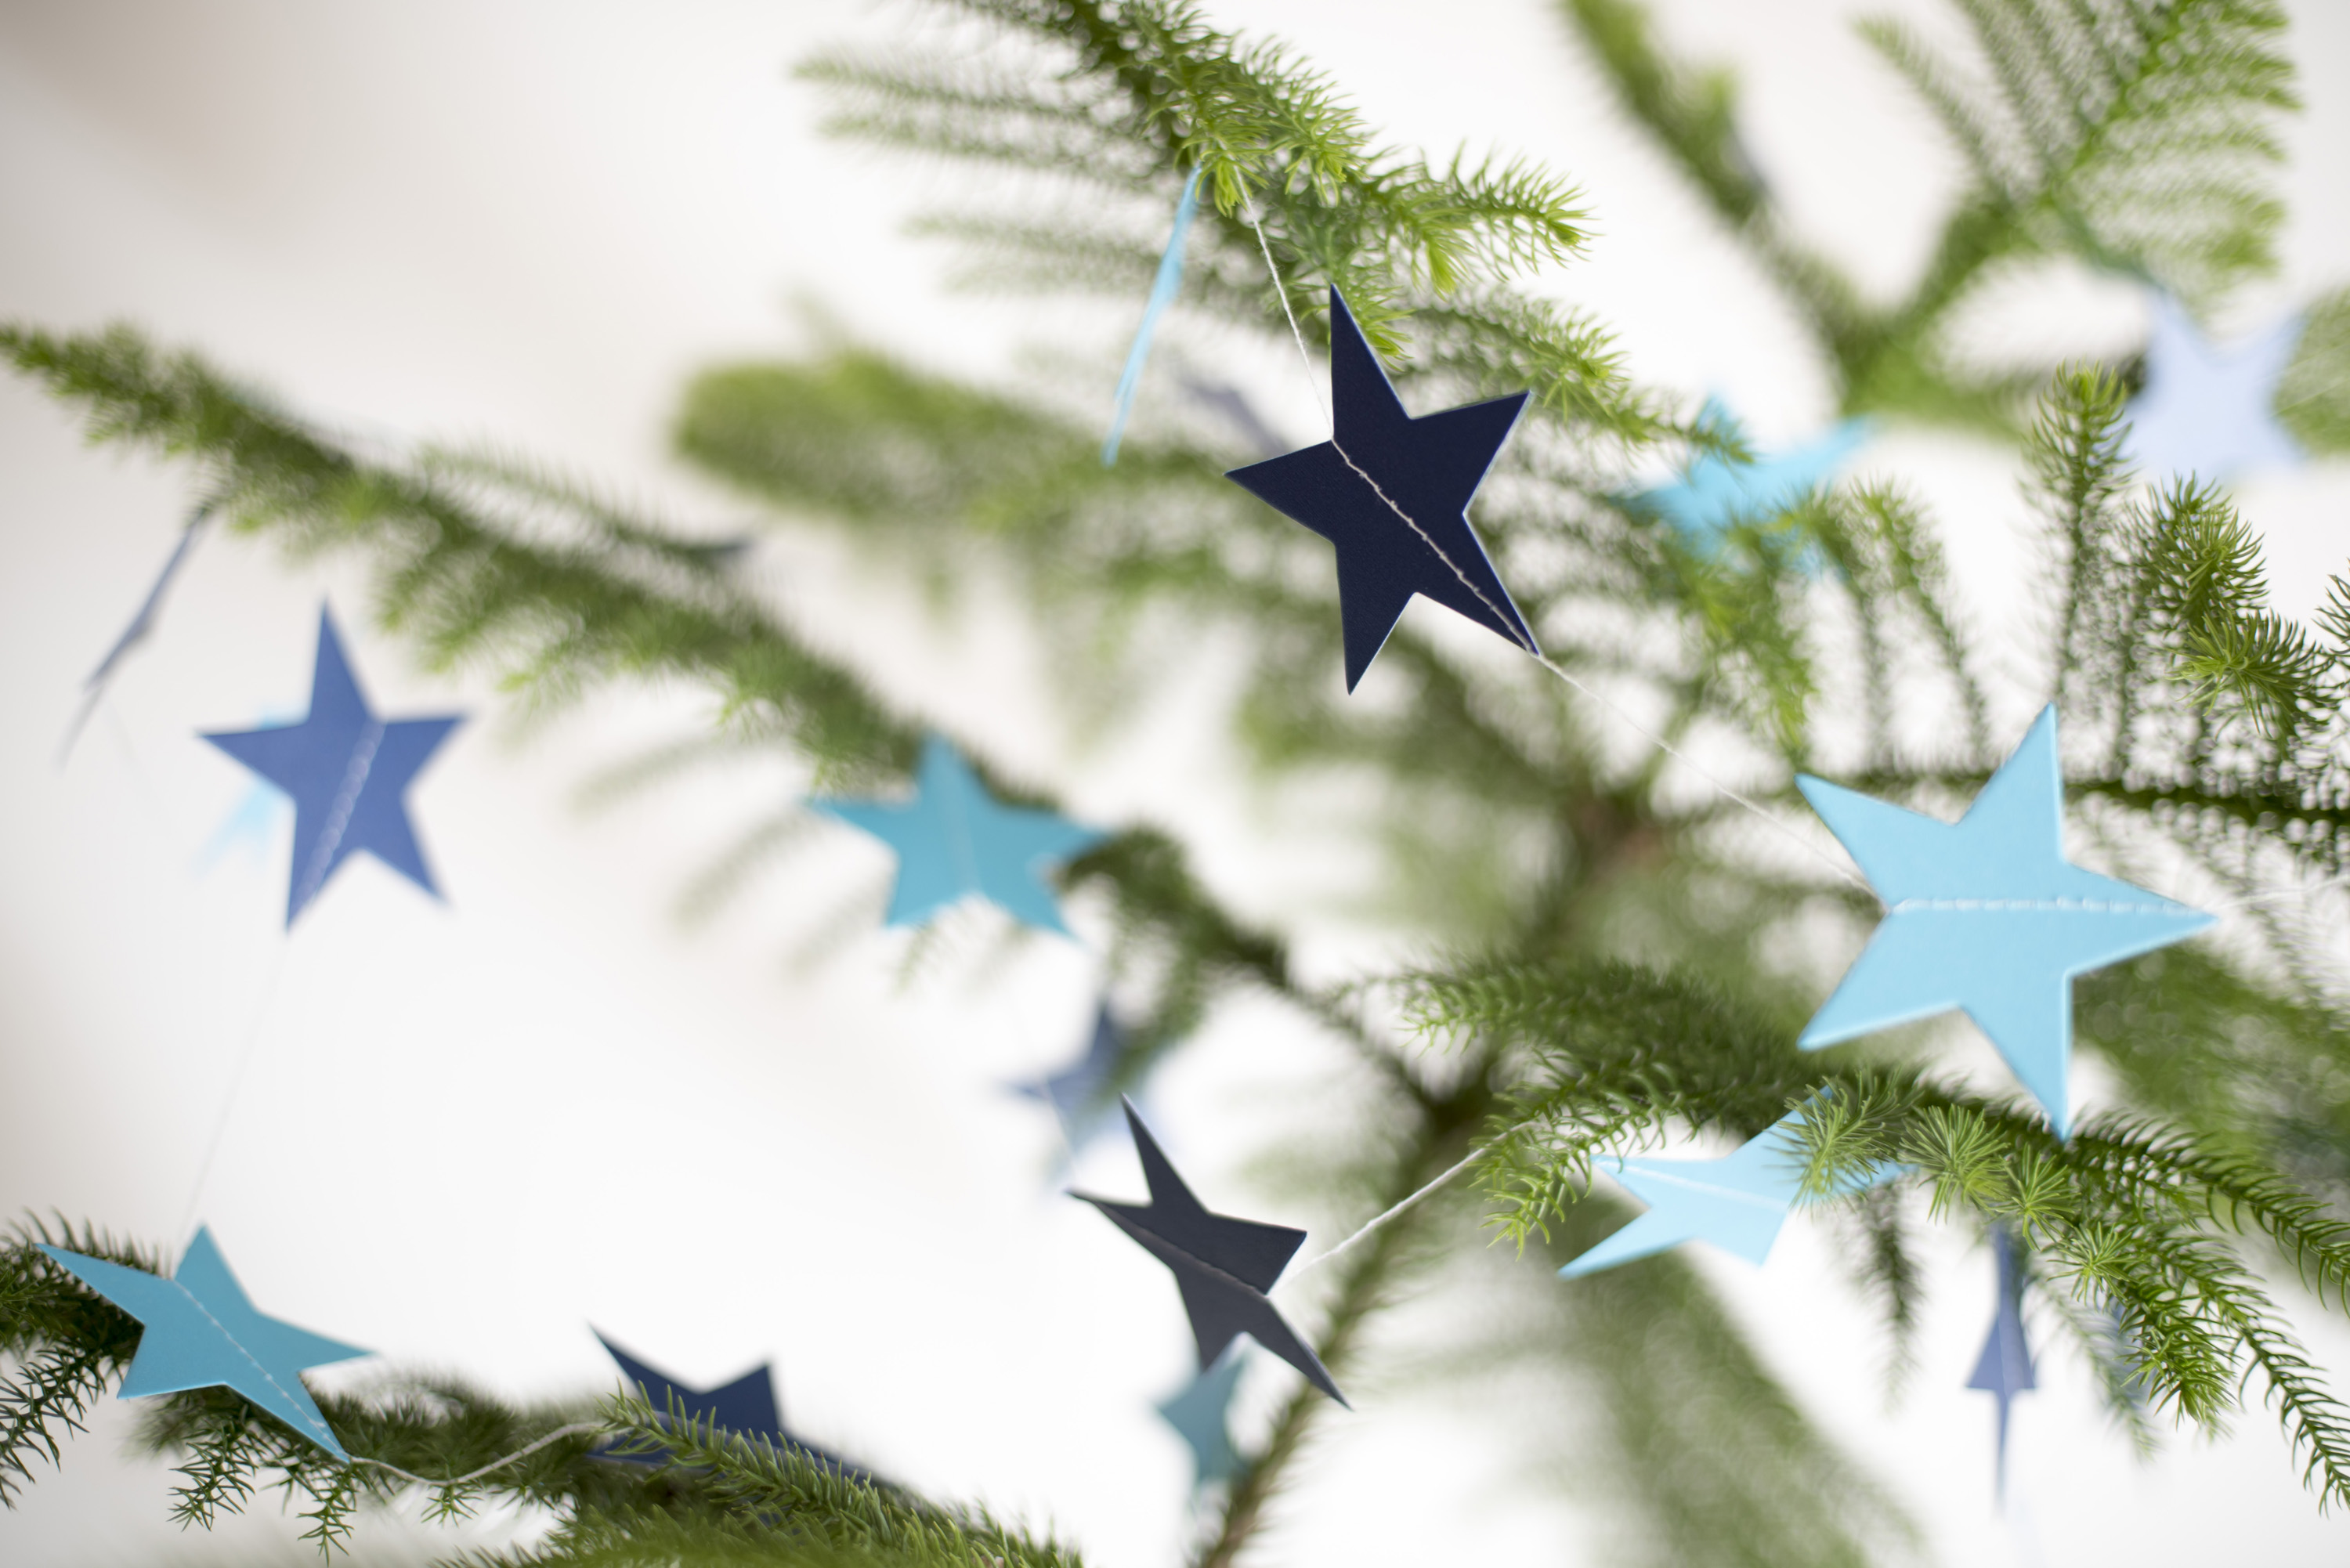 Photo Of Christmas Tree Decorated With Some Stars